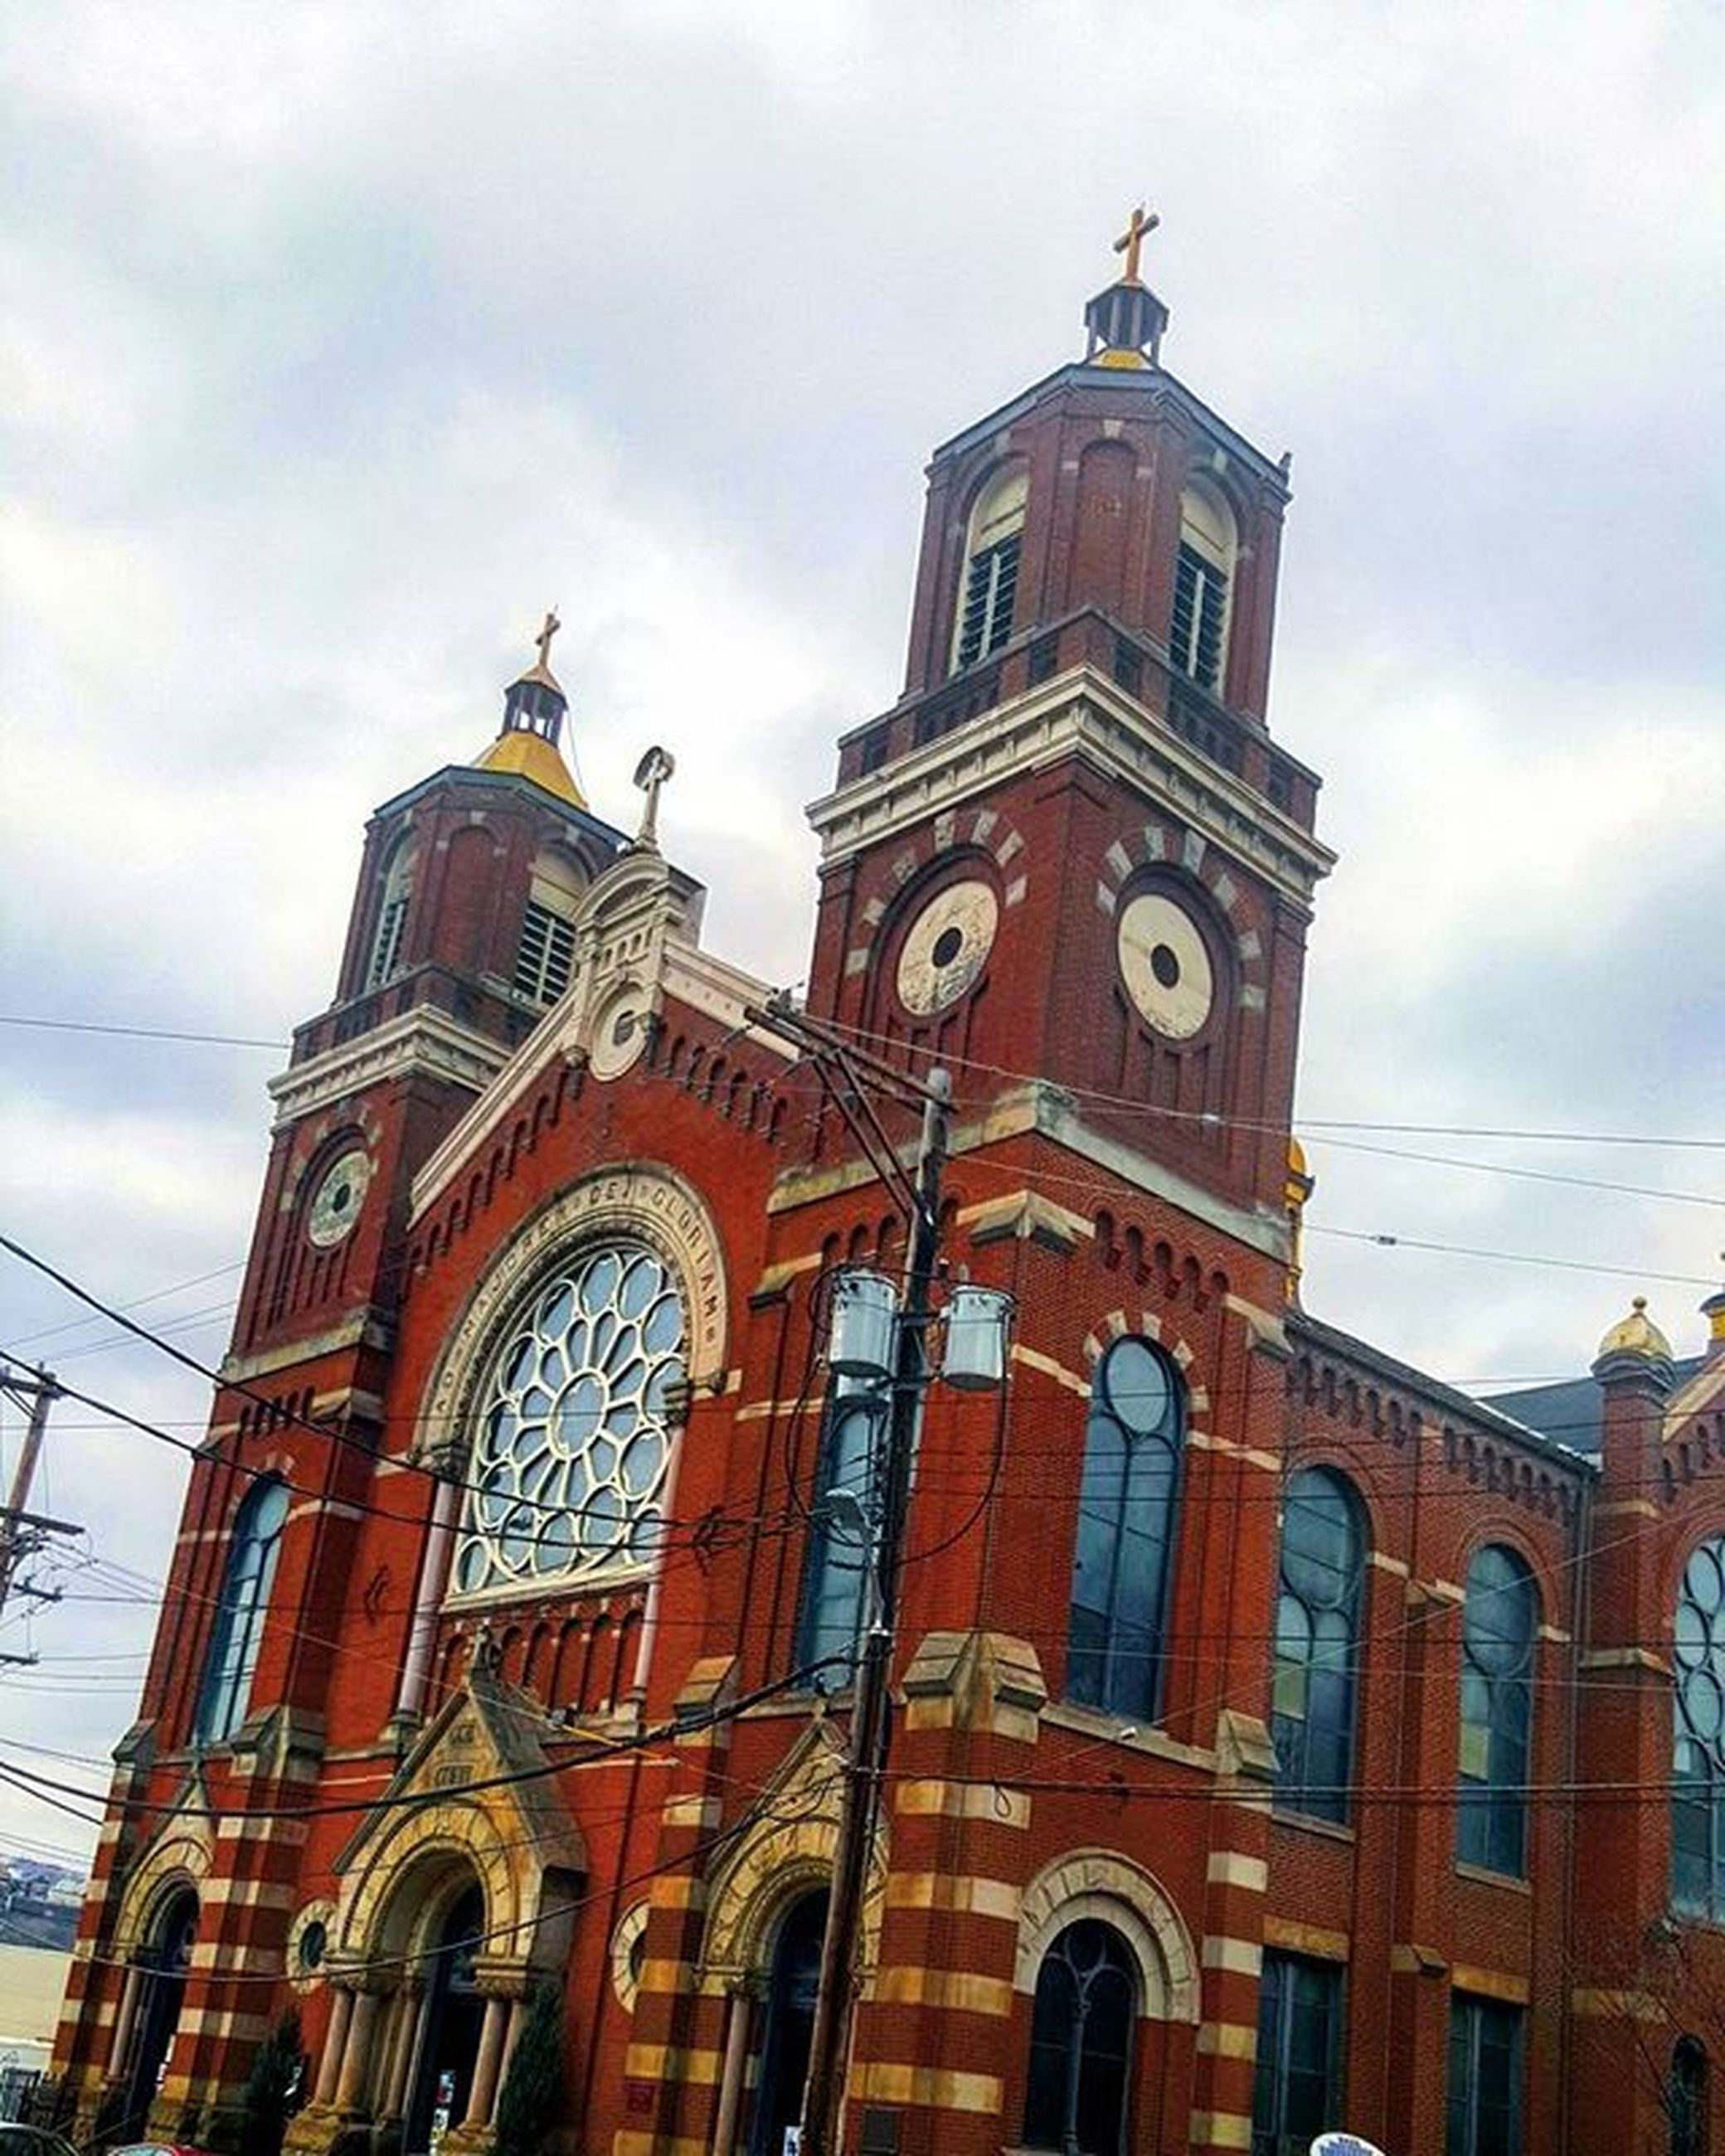 architecture, building exterior, religion, built structure, low angle view, church, place of worship, sky, spirituality, cathedral, cloud - sky, clock tower, tower, travel destinations, cloud, facade, clock, cross